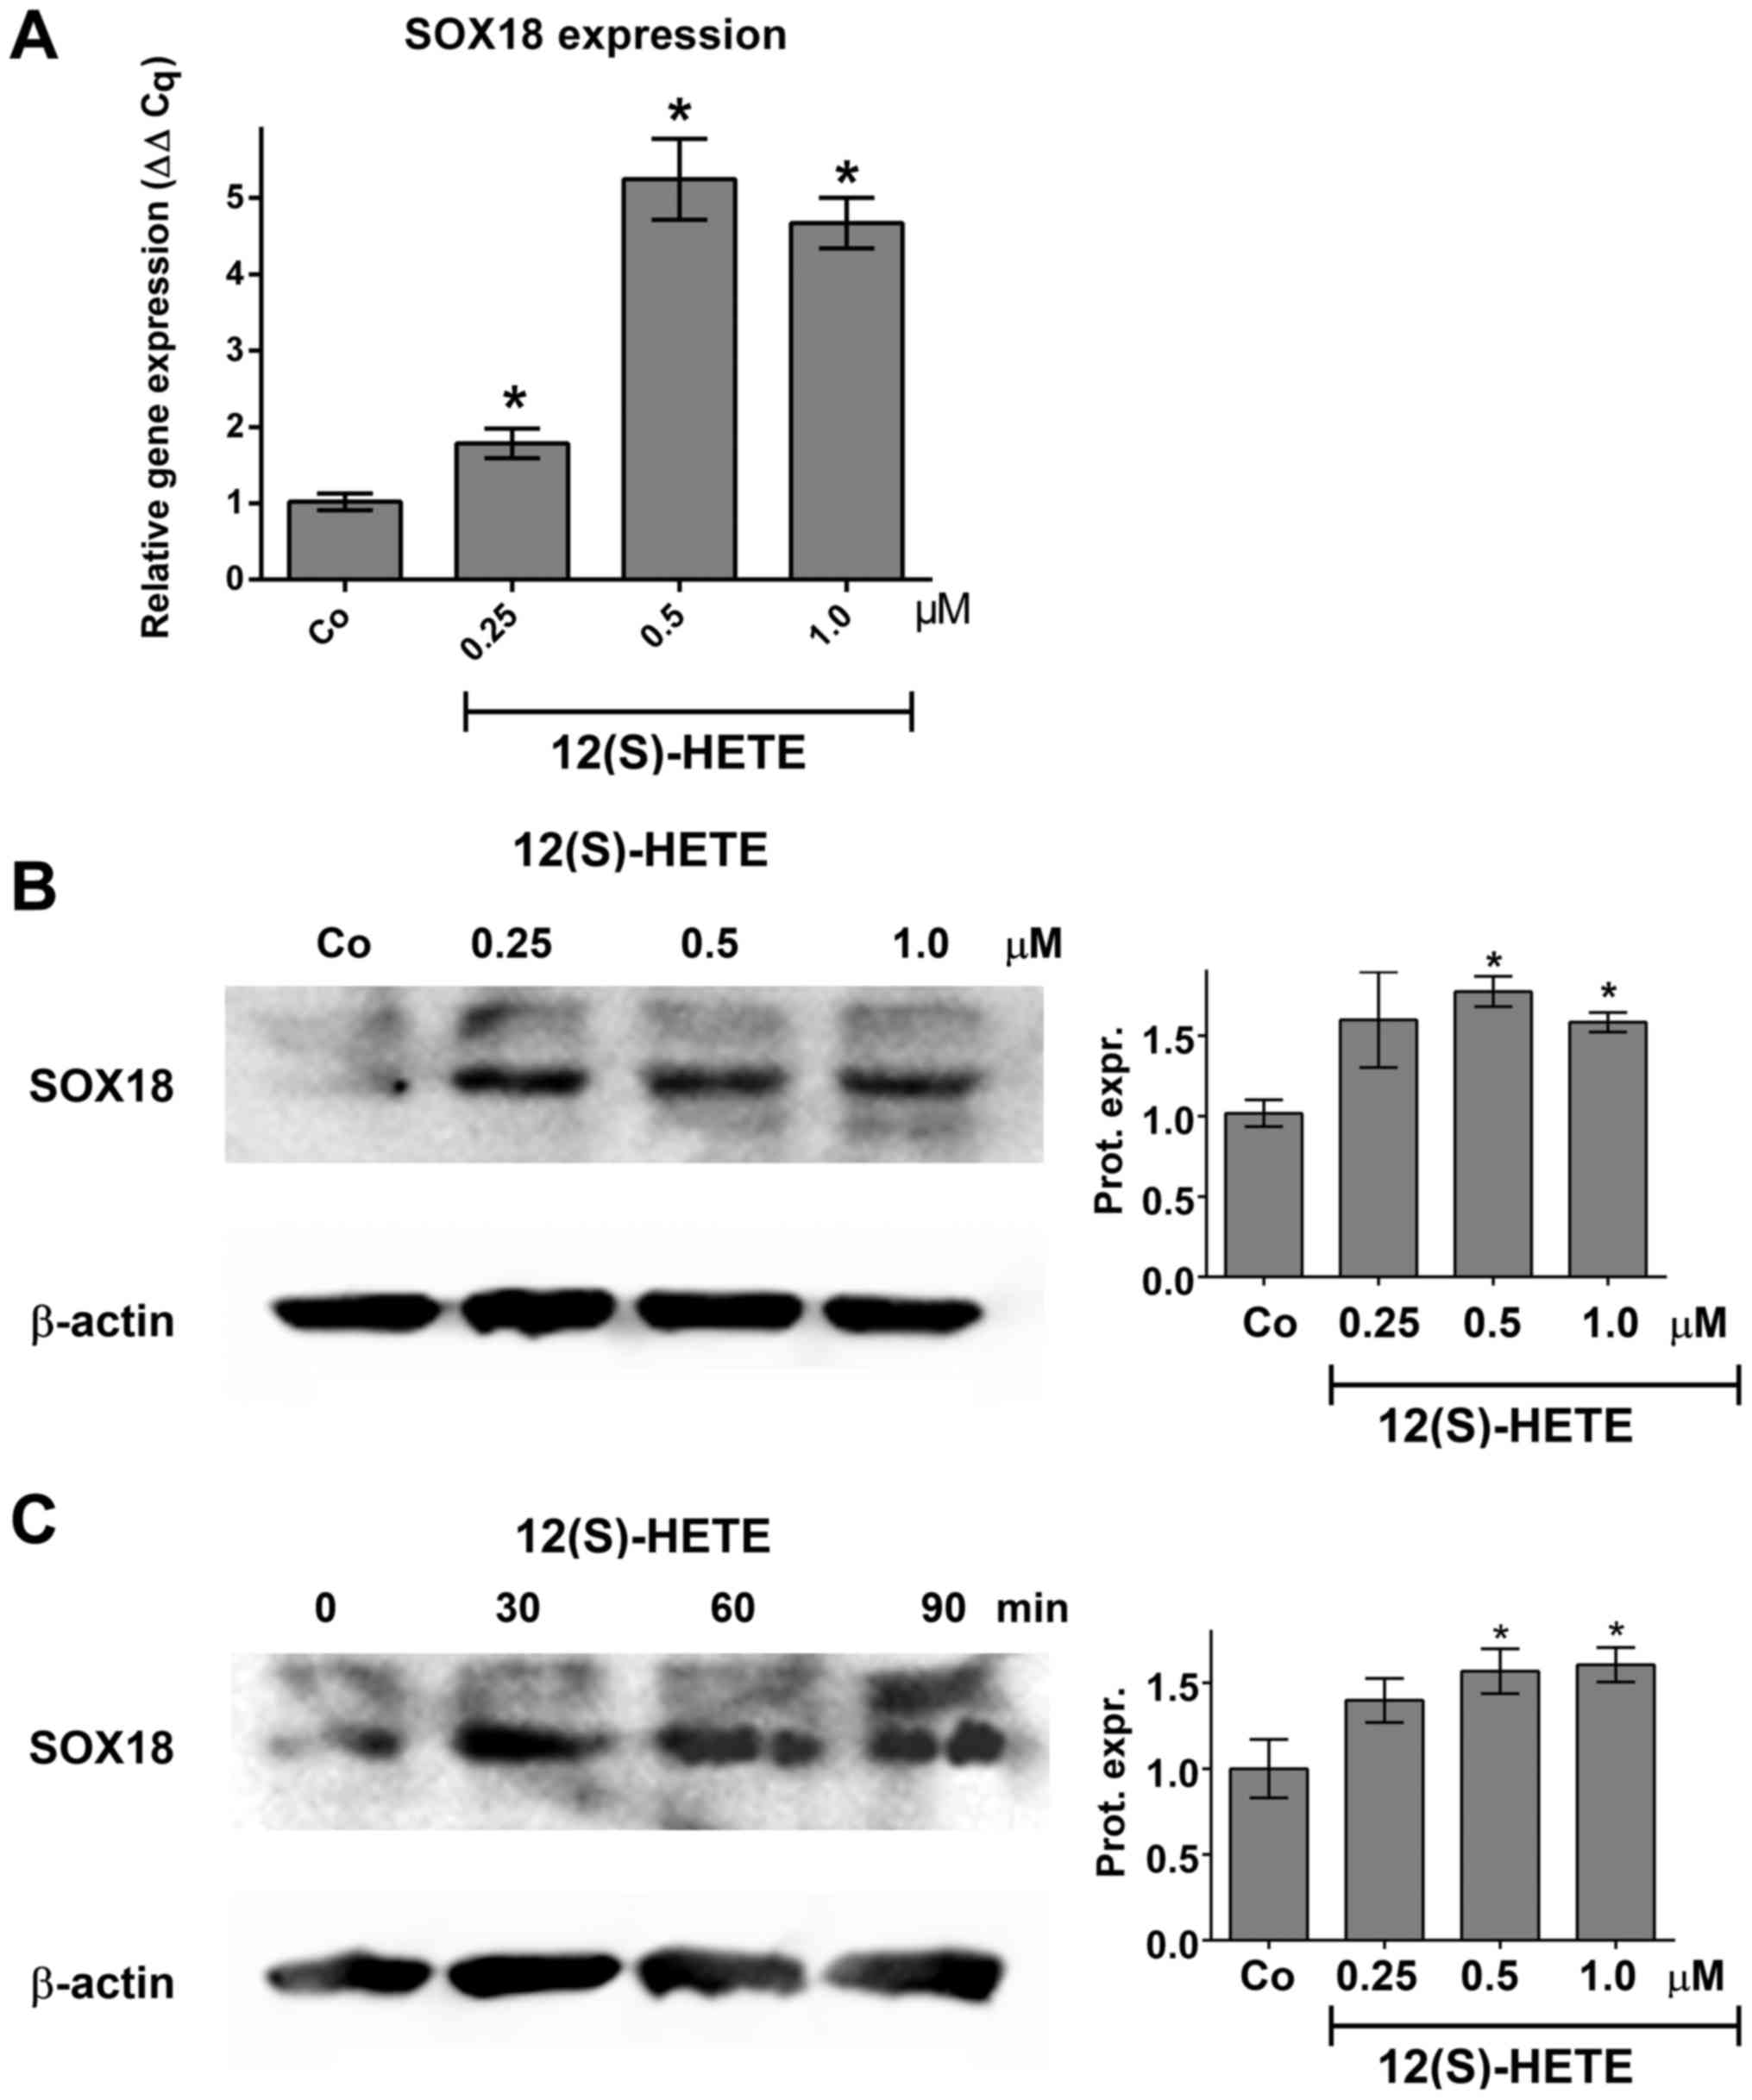 12(S)-HETE induces lymph endothelial cell retraction in